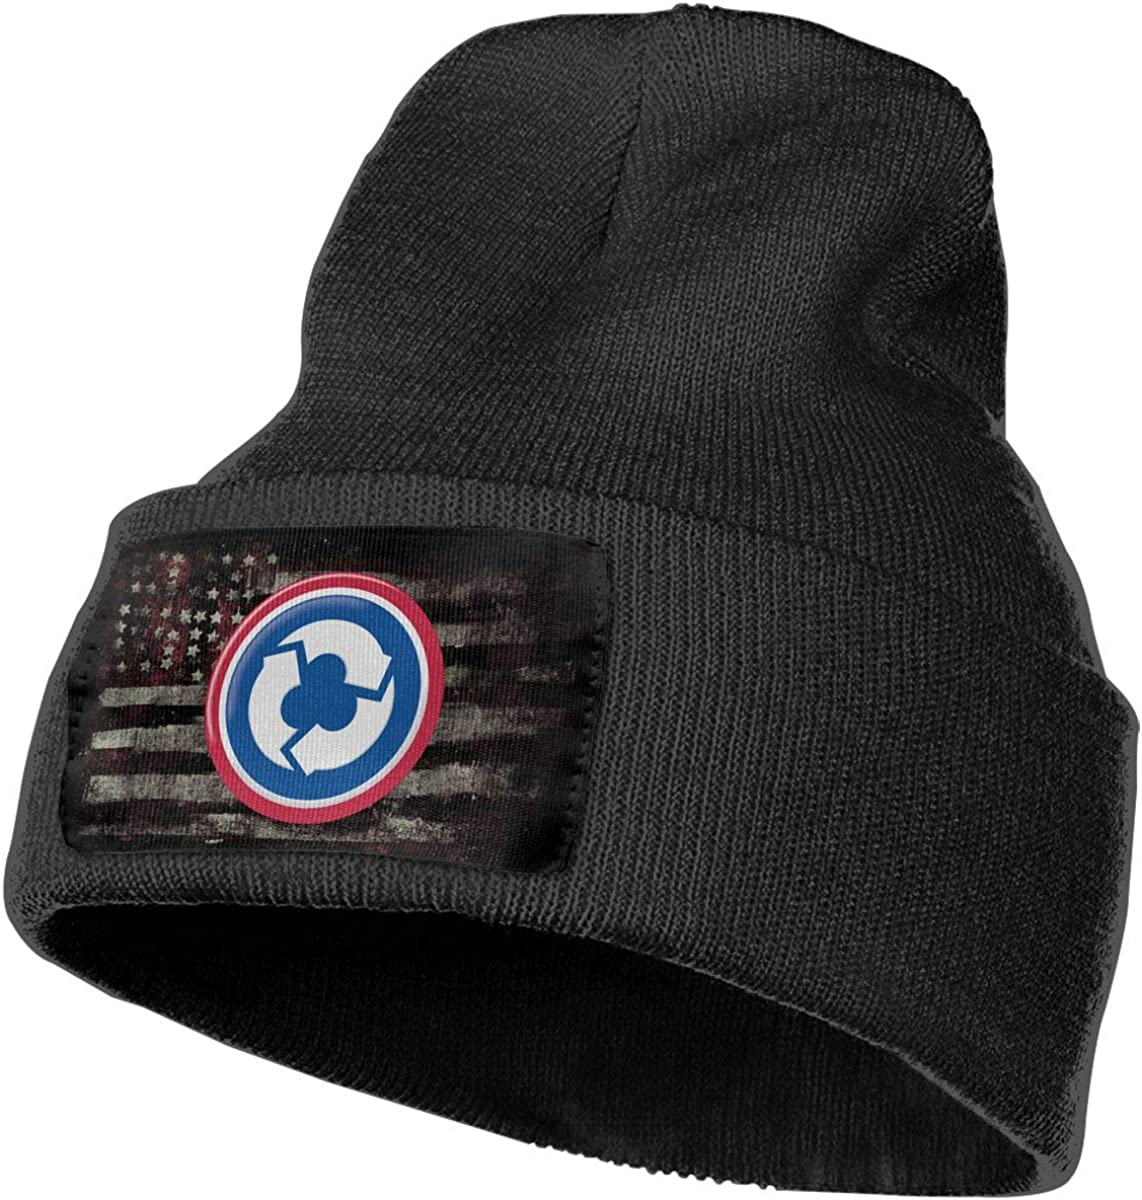 US Army 311th Support Command Mens Beanie Cap Skull Cap Winter Warm Knitting Hats.